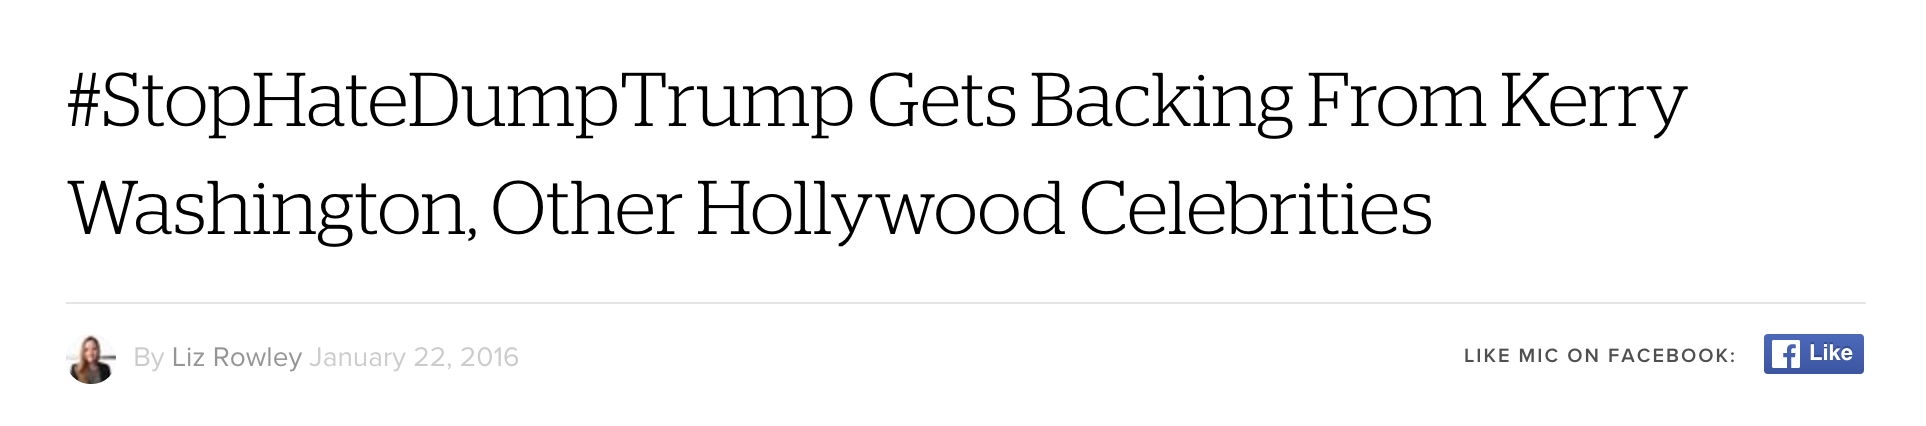 """""""#StopHateDumpTrump Gets Backing From Kerry Washington, Other Hollywood Celebrities,""""  Mic.com , Jan. 22, 2016."""